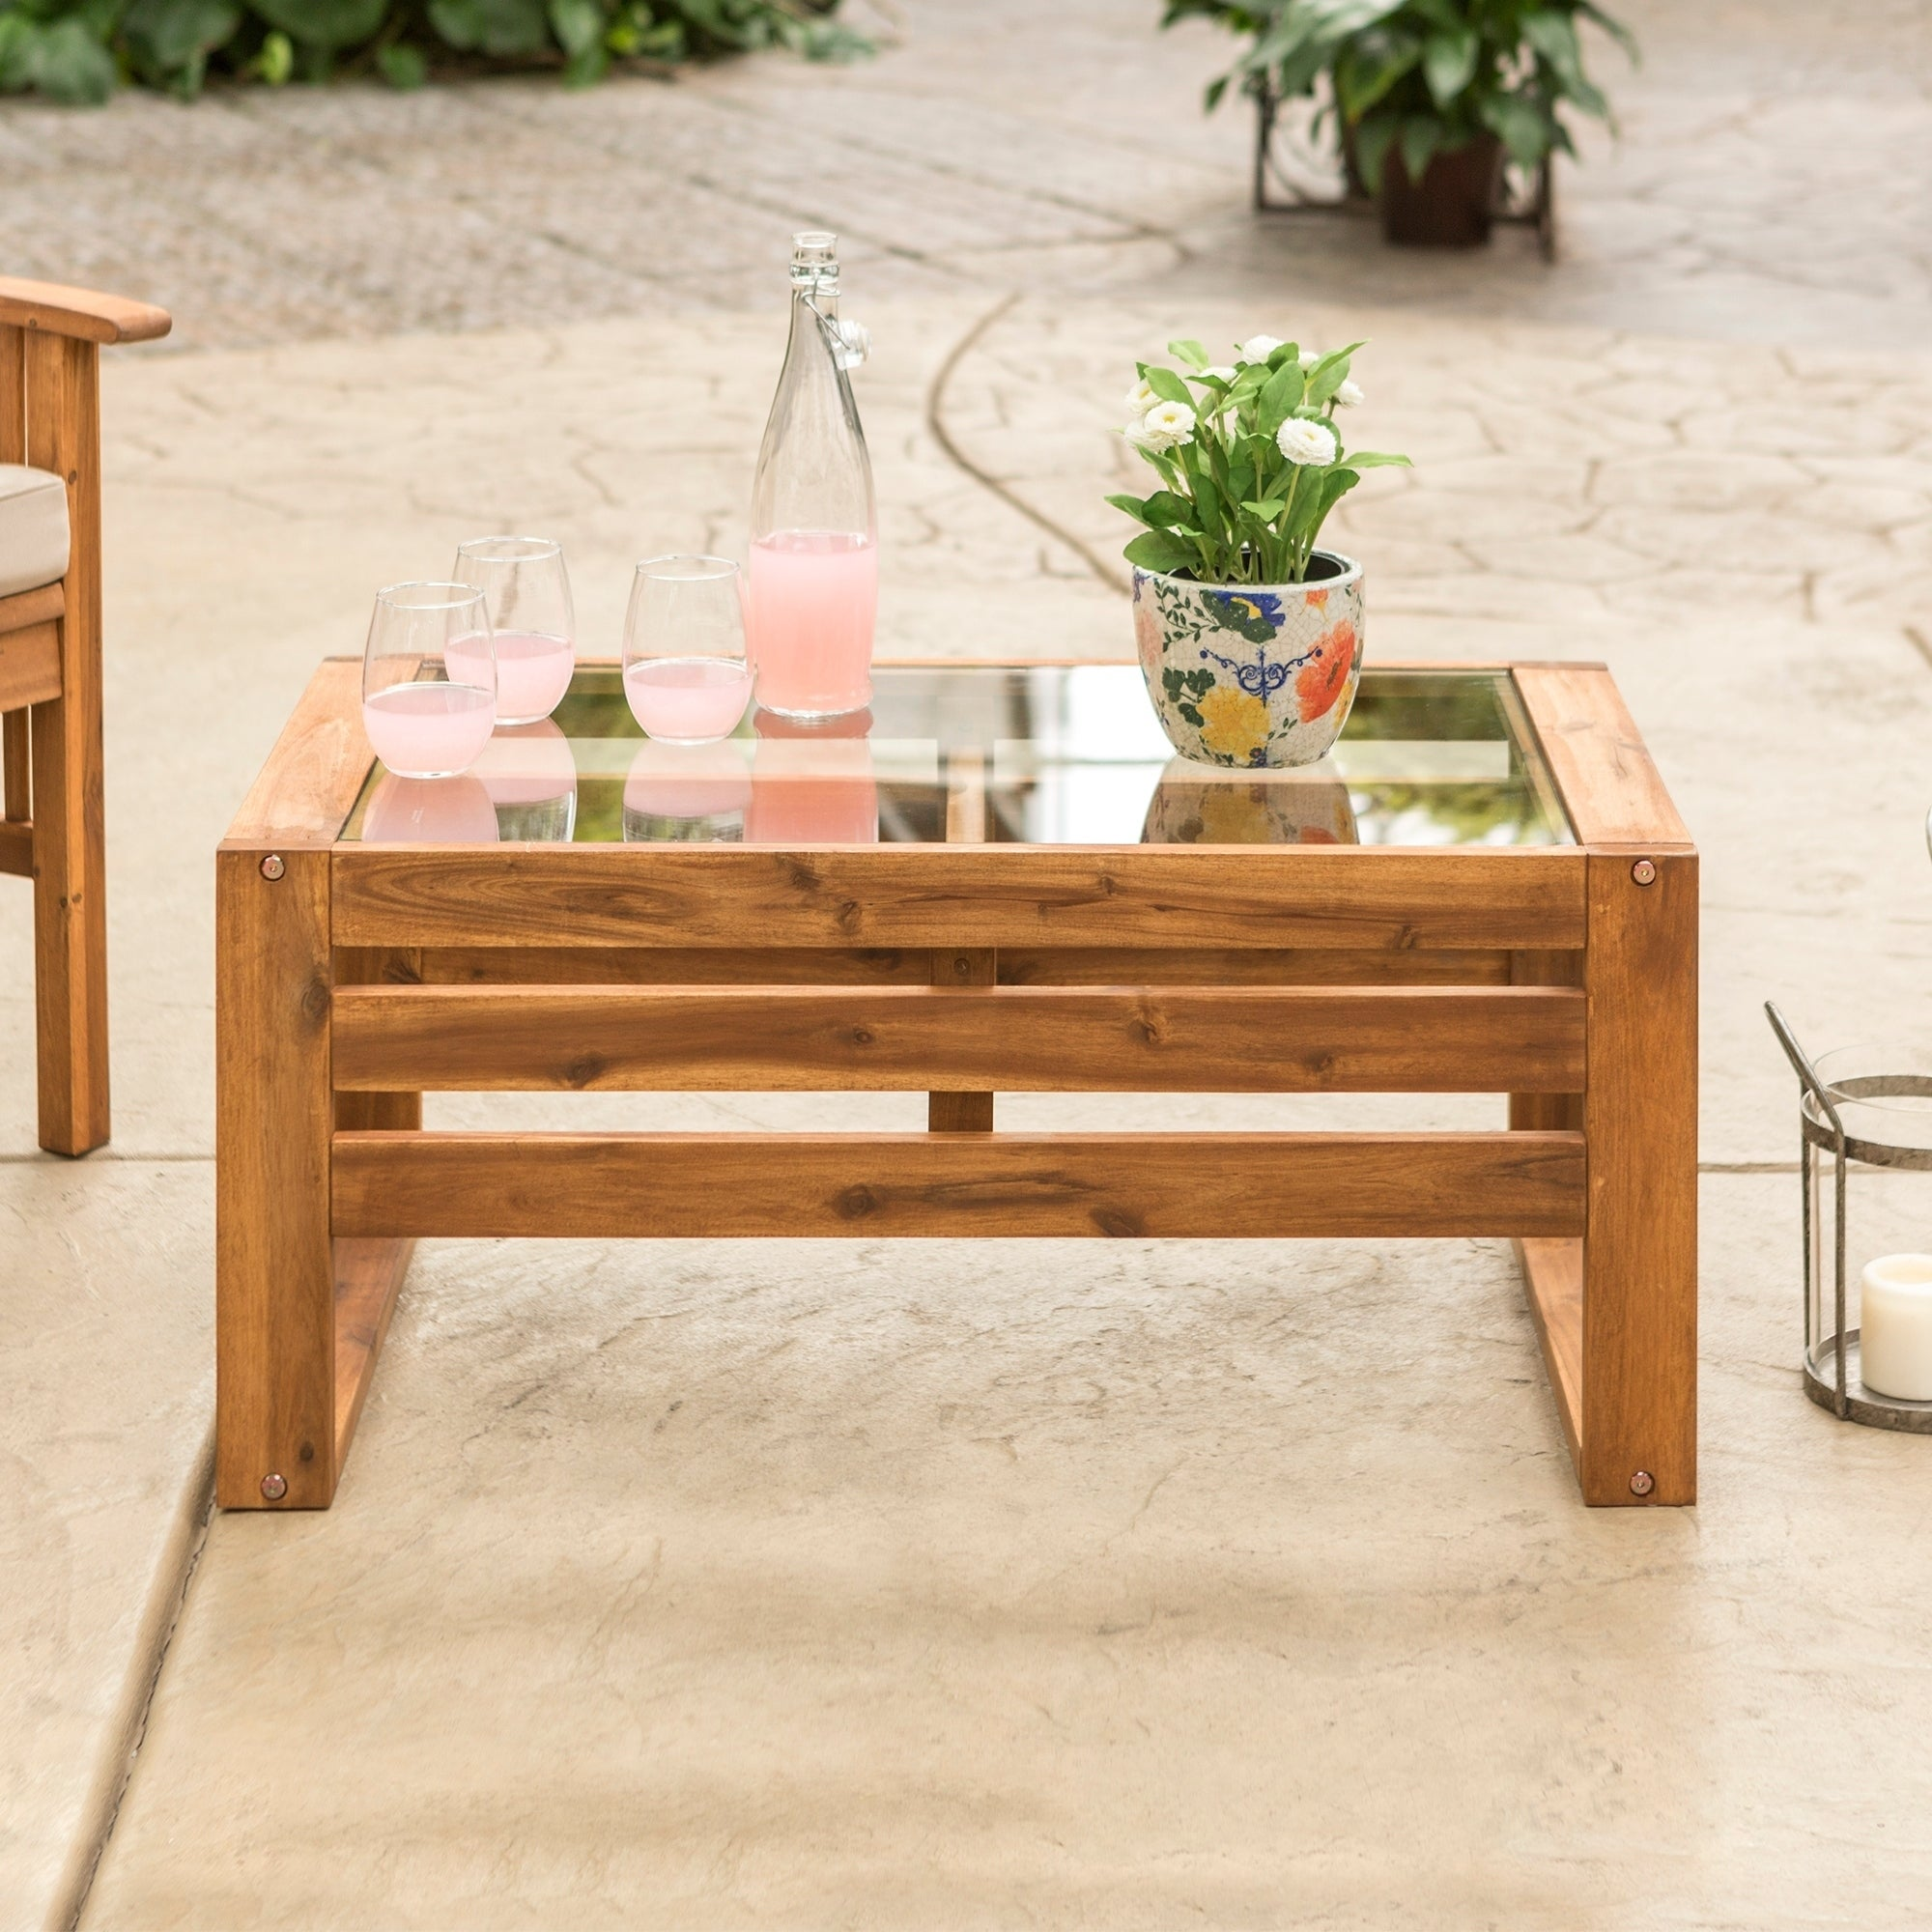 Details About Hudson Acacia Outdoor Coffee Table 36 X 20 16h Brown